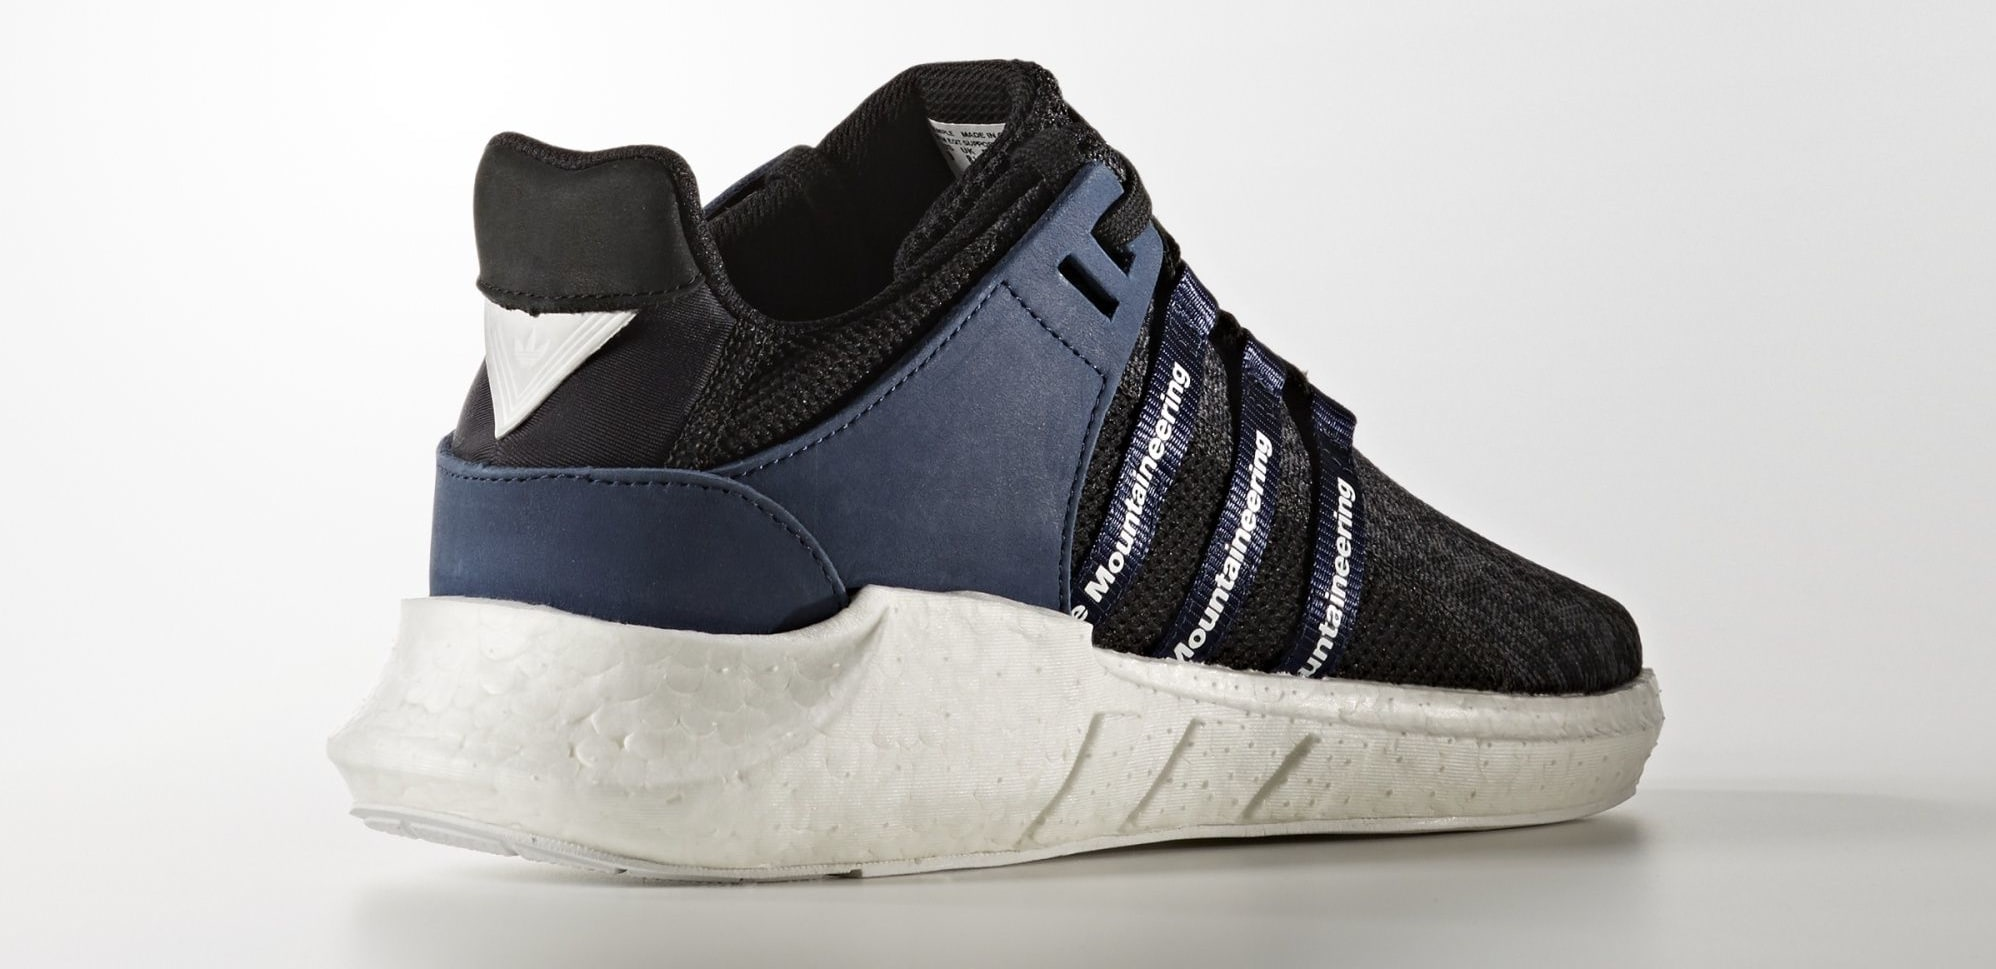 half off dcc28 af2af Image via Adidas White Mountaineering x Adidas EQT Support 93-17 heel